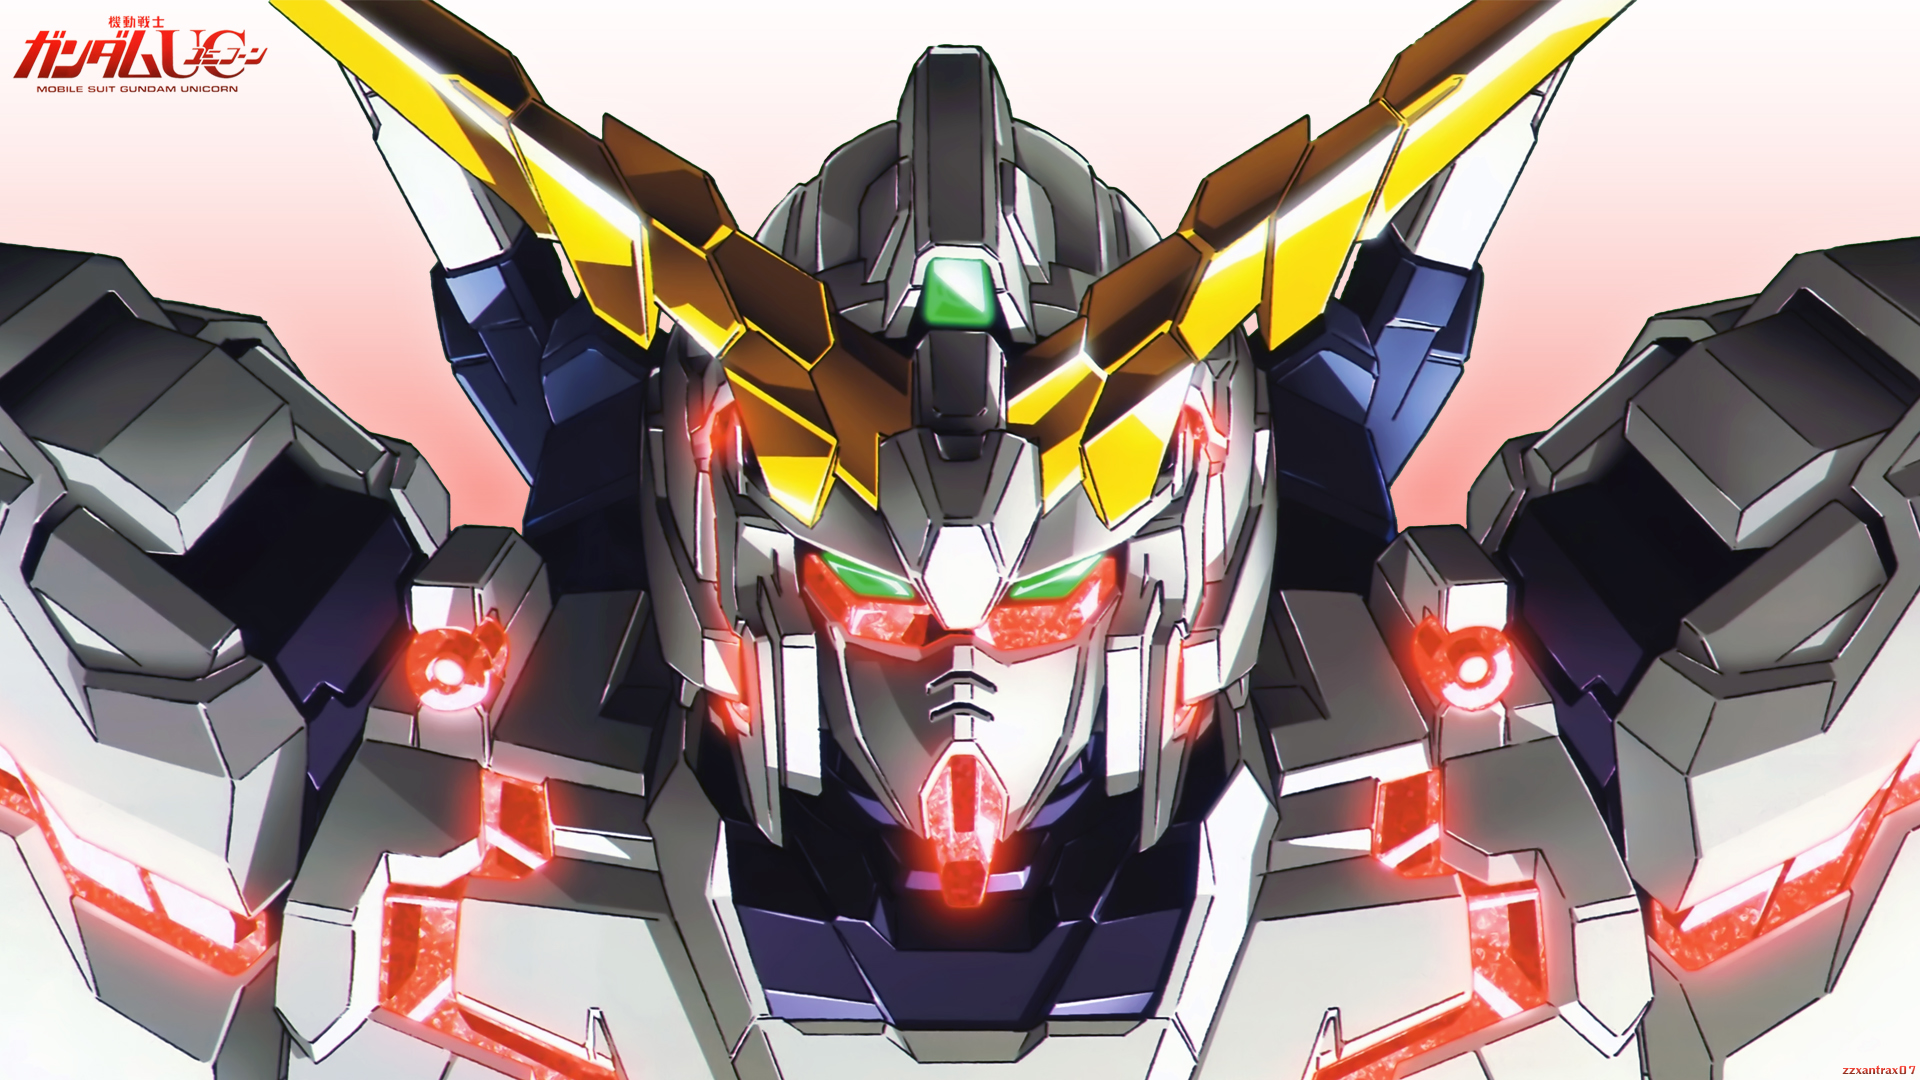 Gundam Res: 1920x1080 HD / Size:1057kb. Views: 52870